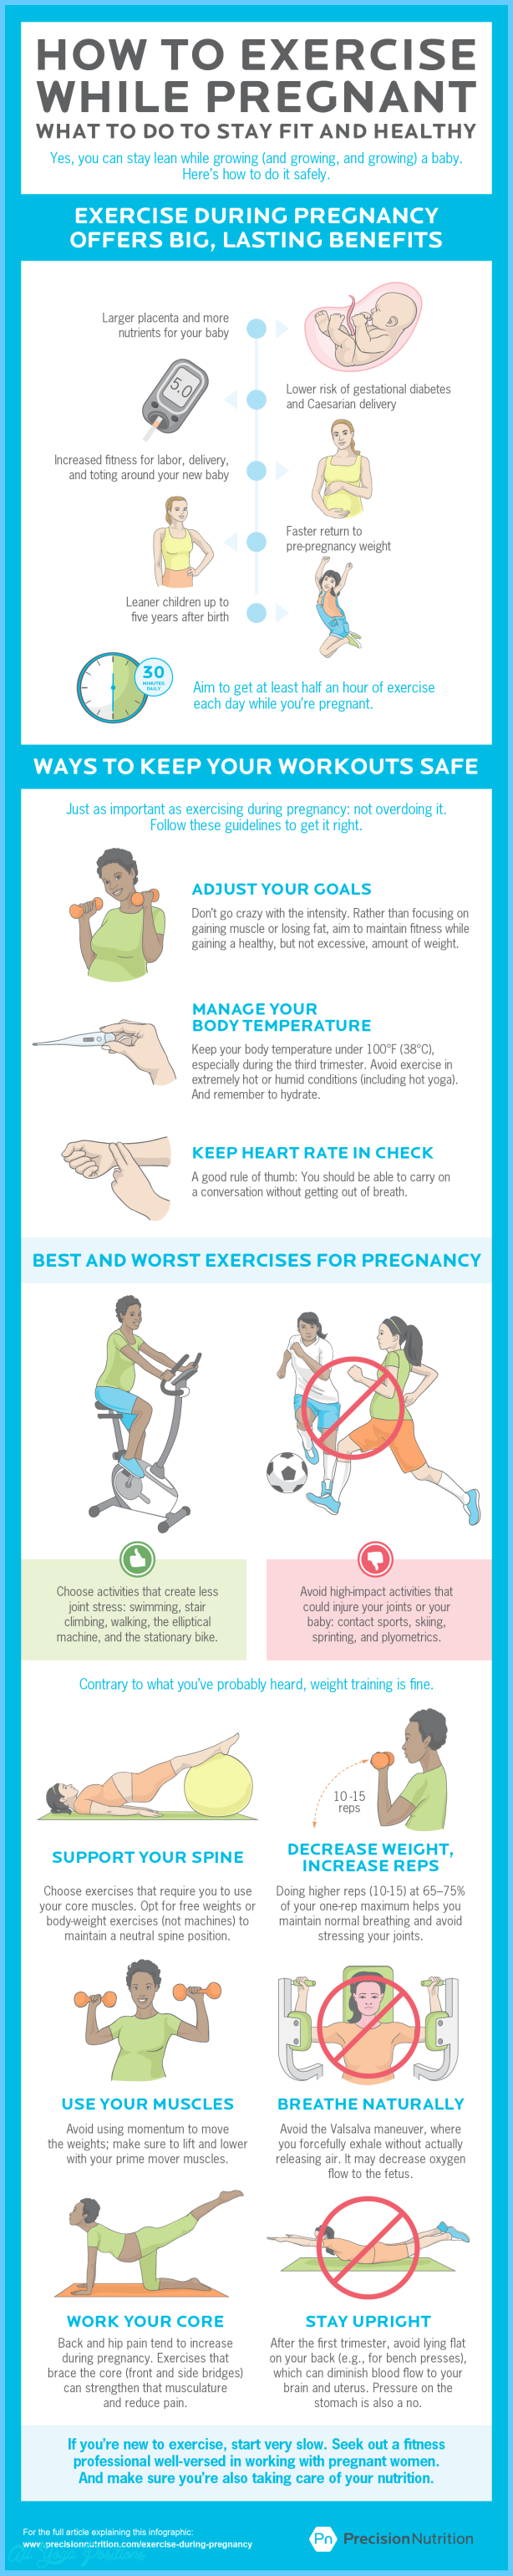 precision_nutrition_how_to_exercise_while_pregnant_post.png